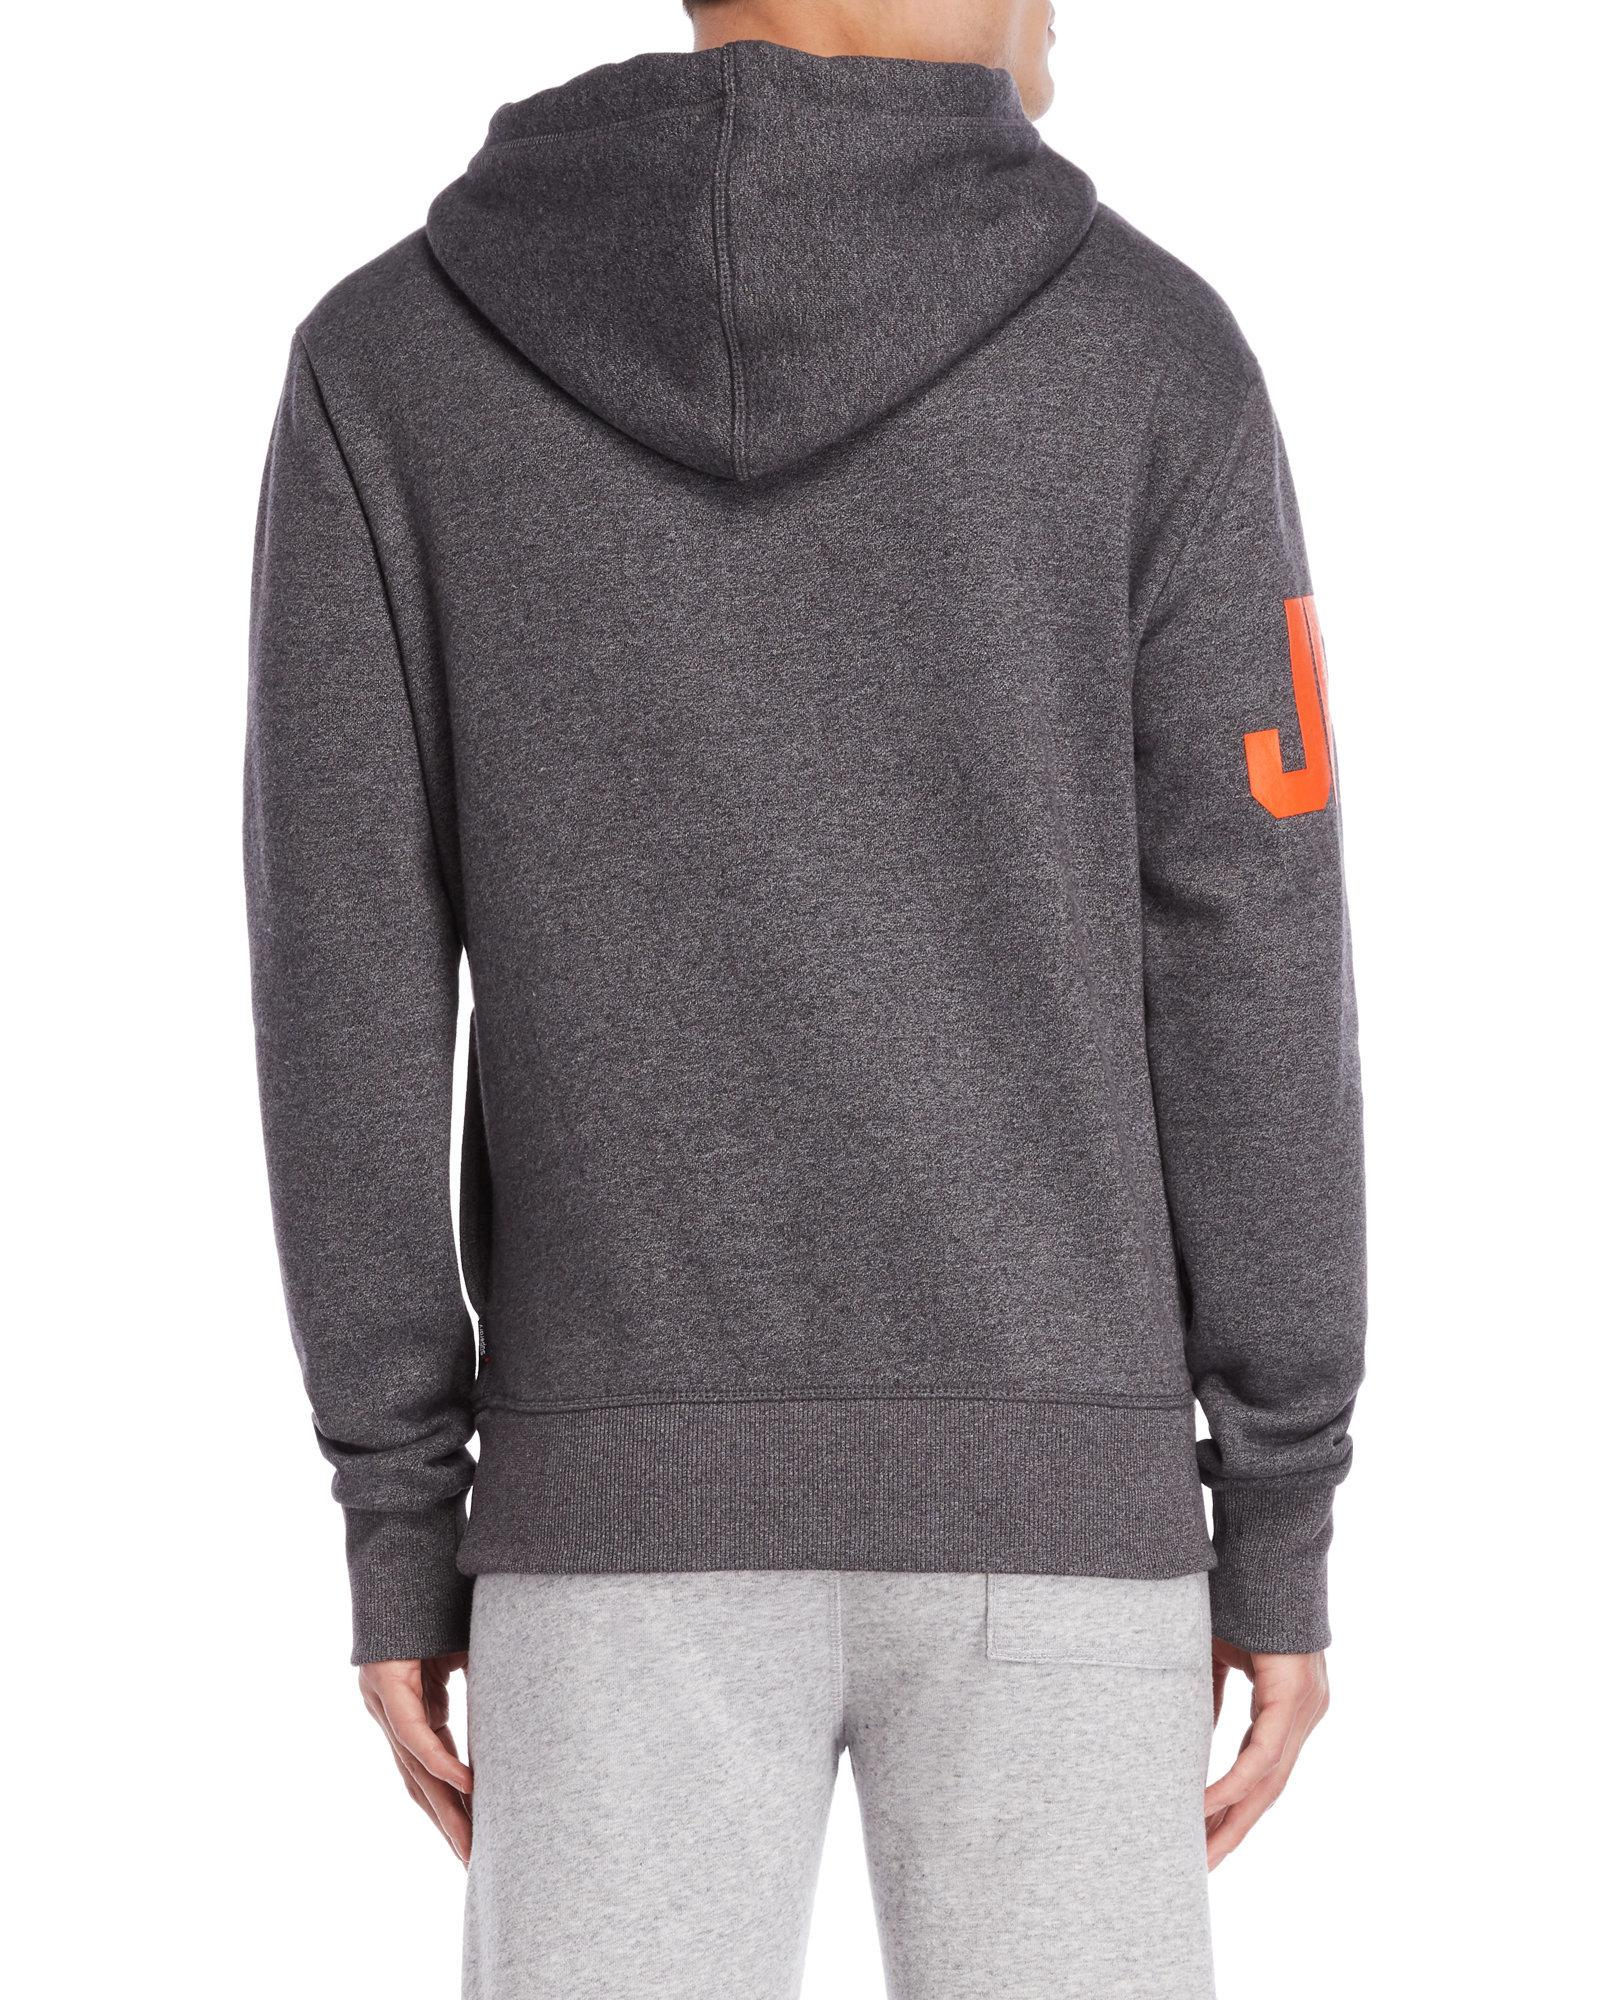 Superdry - Gray Vintage Logo Pullover Hoodie - Lyst. View fullscreen 10a3b4d0f1